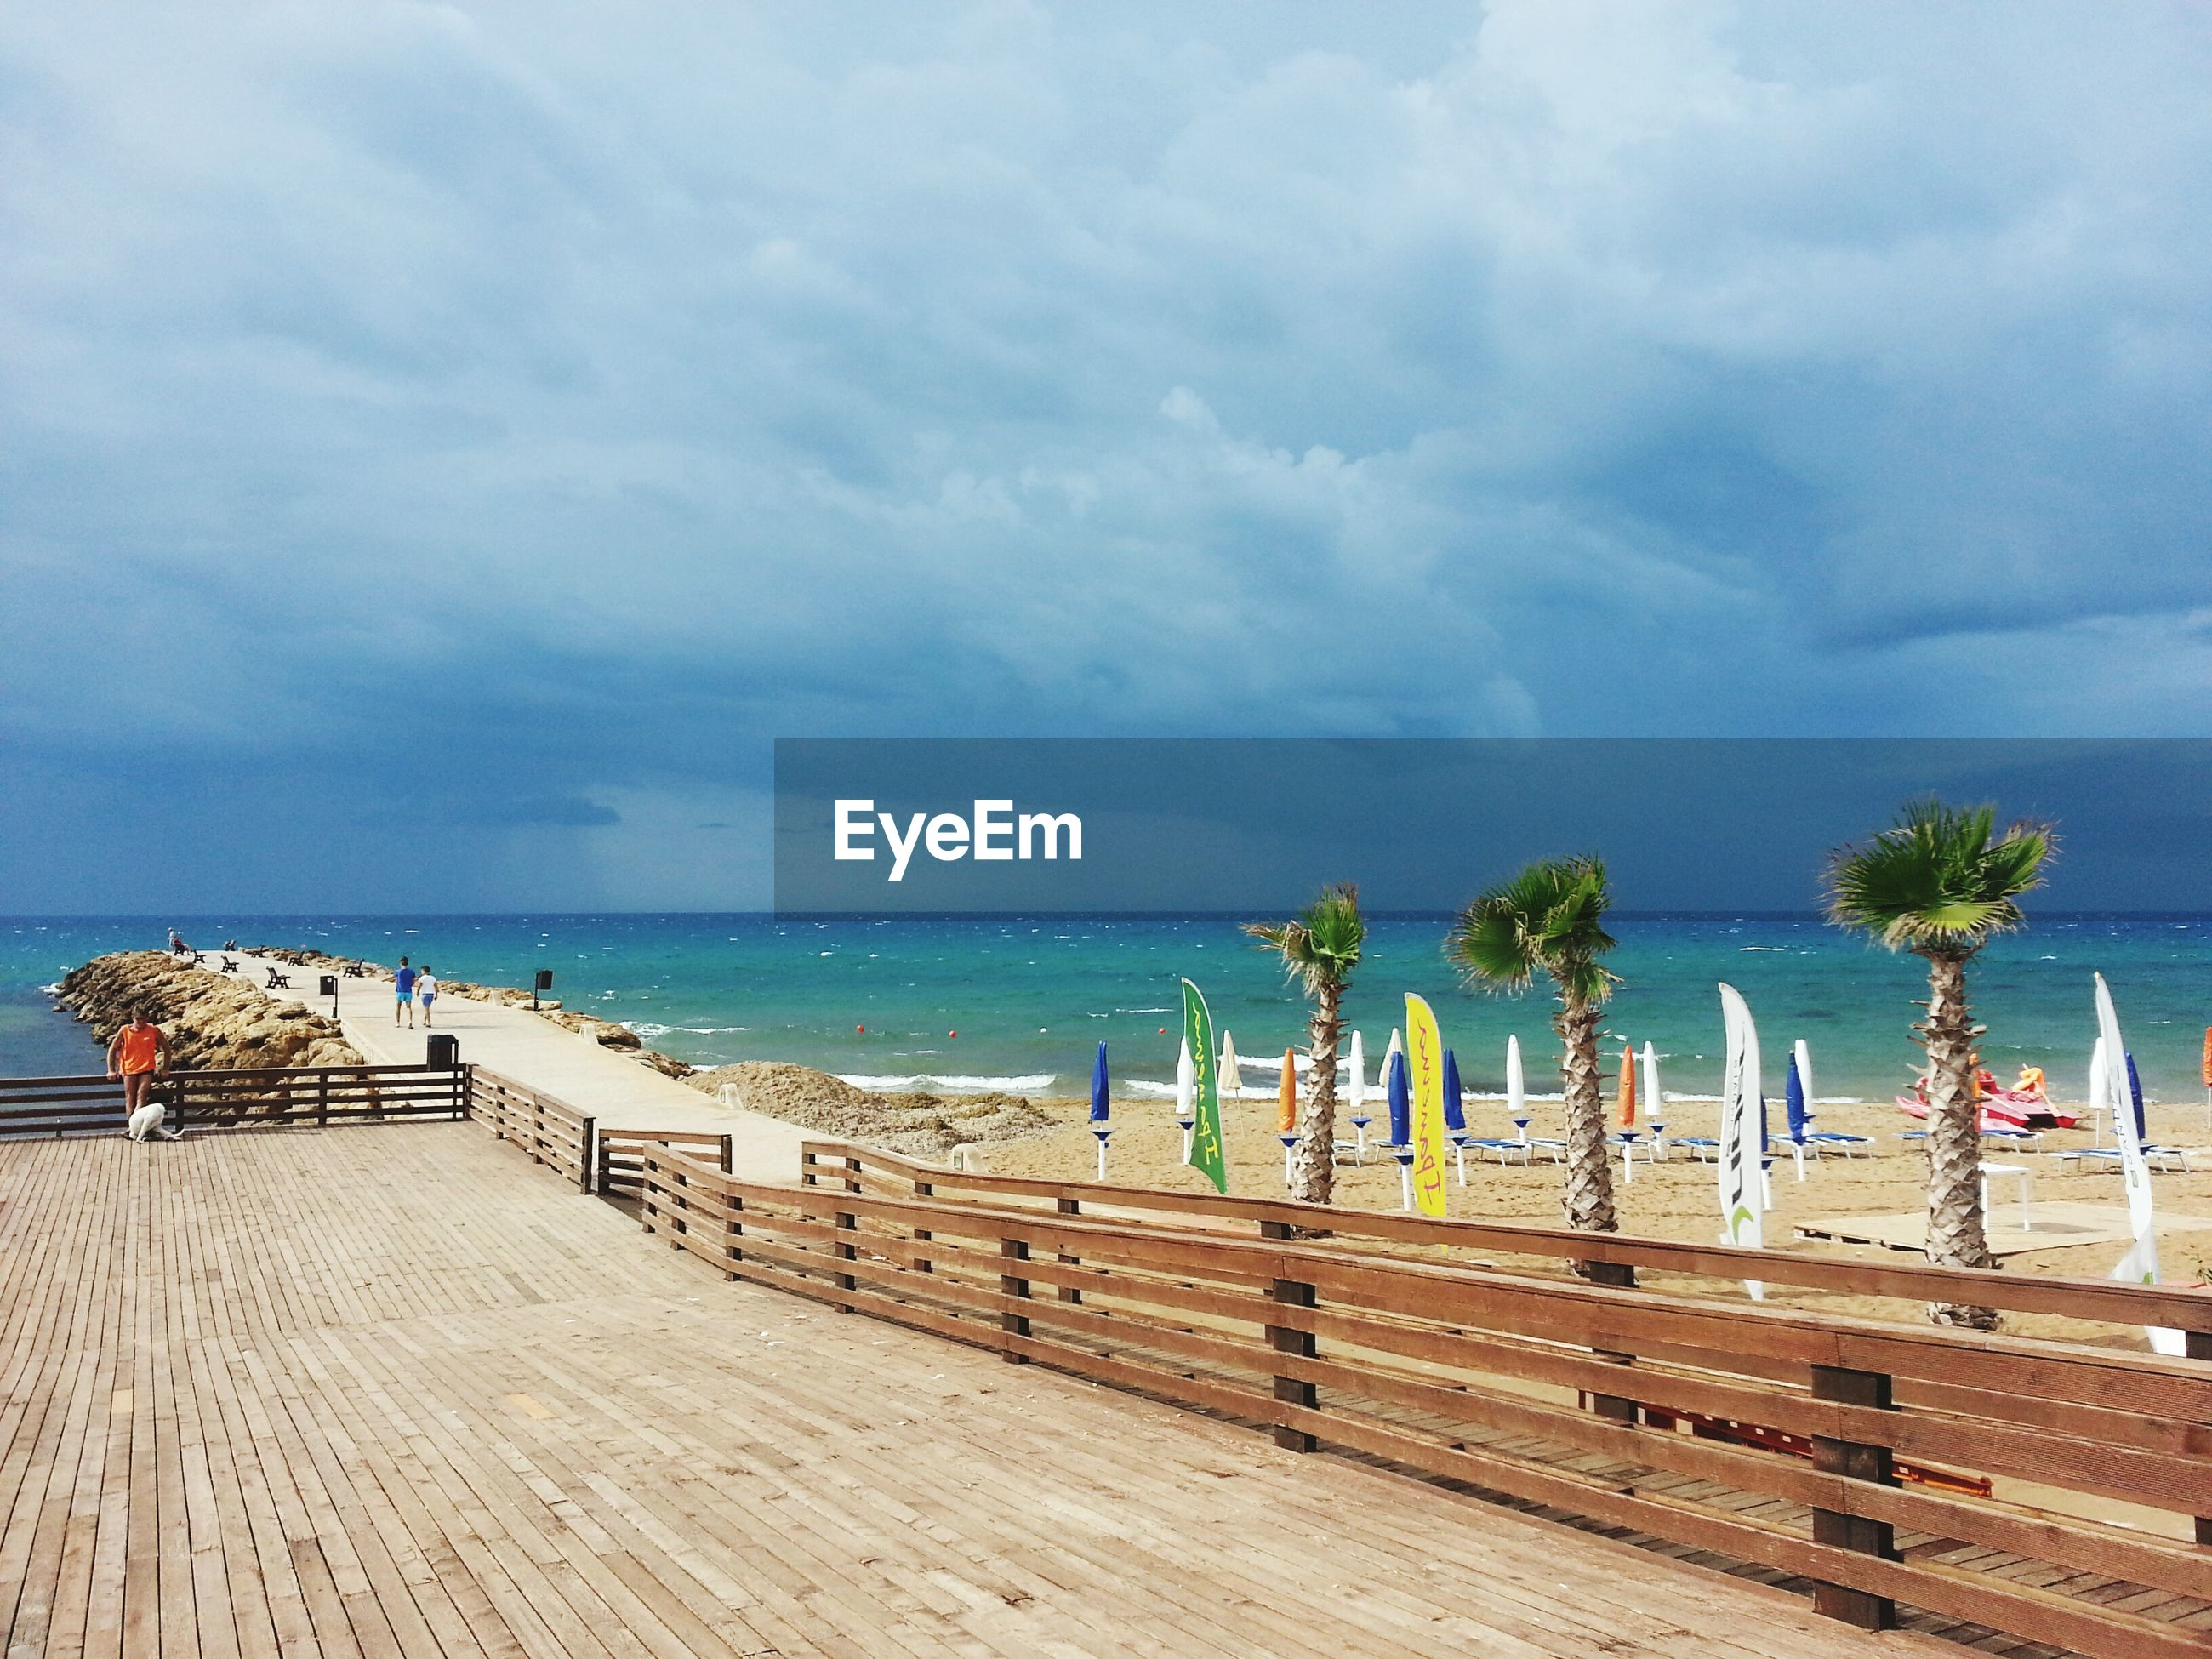 sea, beach, horizon over water, sky, sand, water, shore, tranquility, tranquil scene, scenics, beauty in nature, cloud - sky, nature, incidental people, pier, vacations, idyllic, cloudy, cloud, tourism